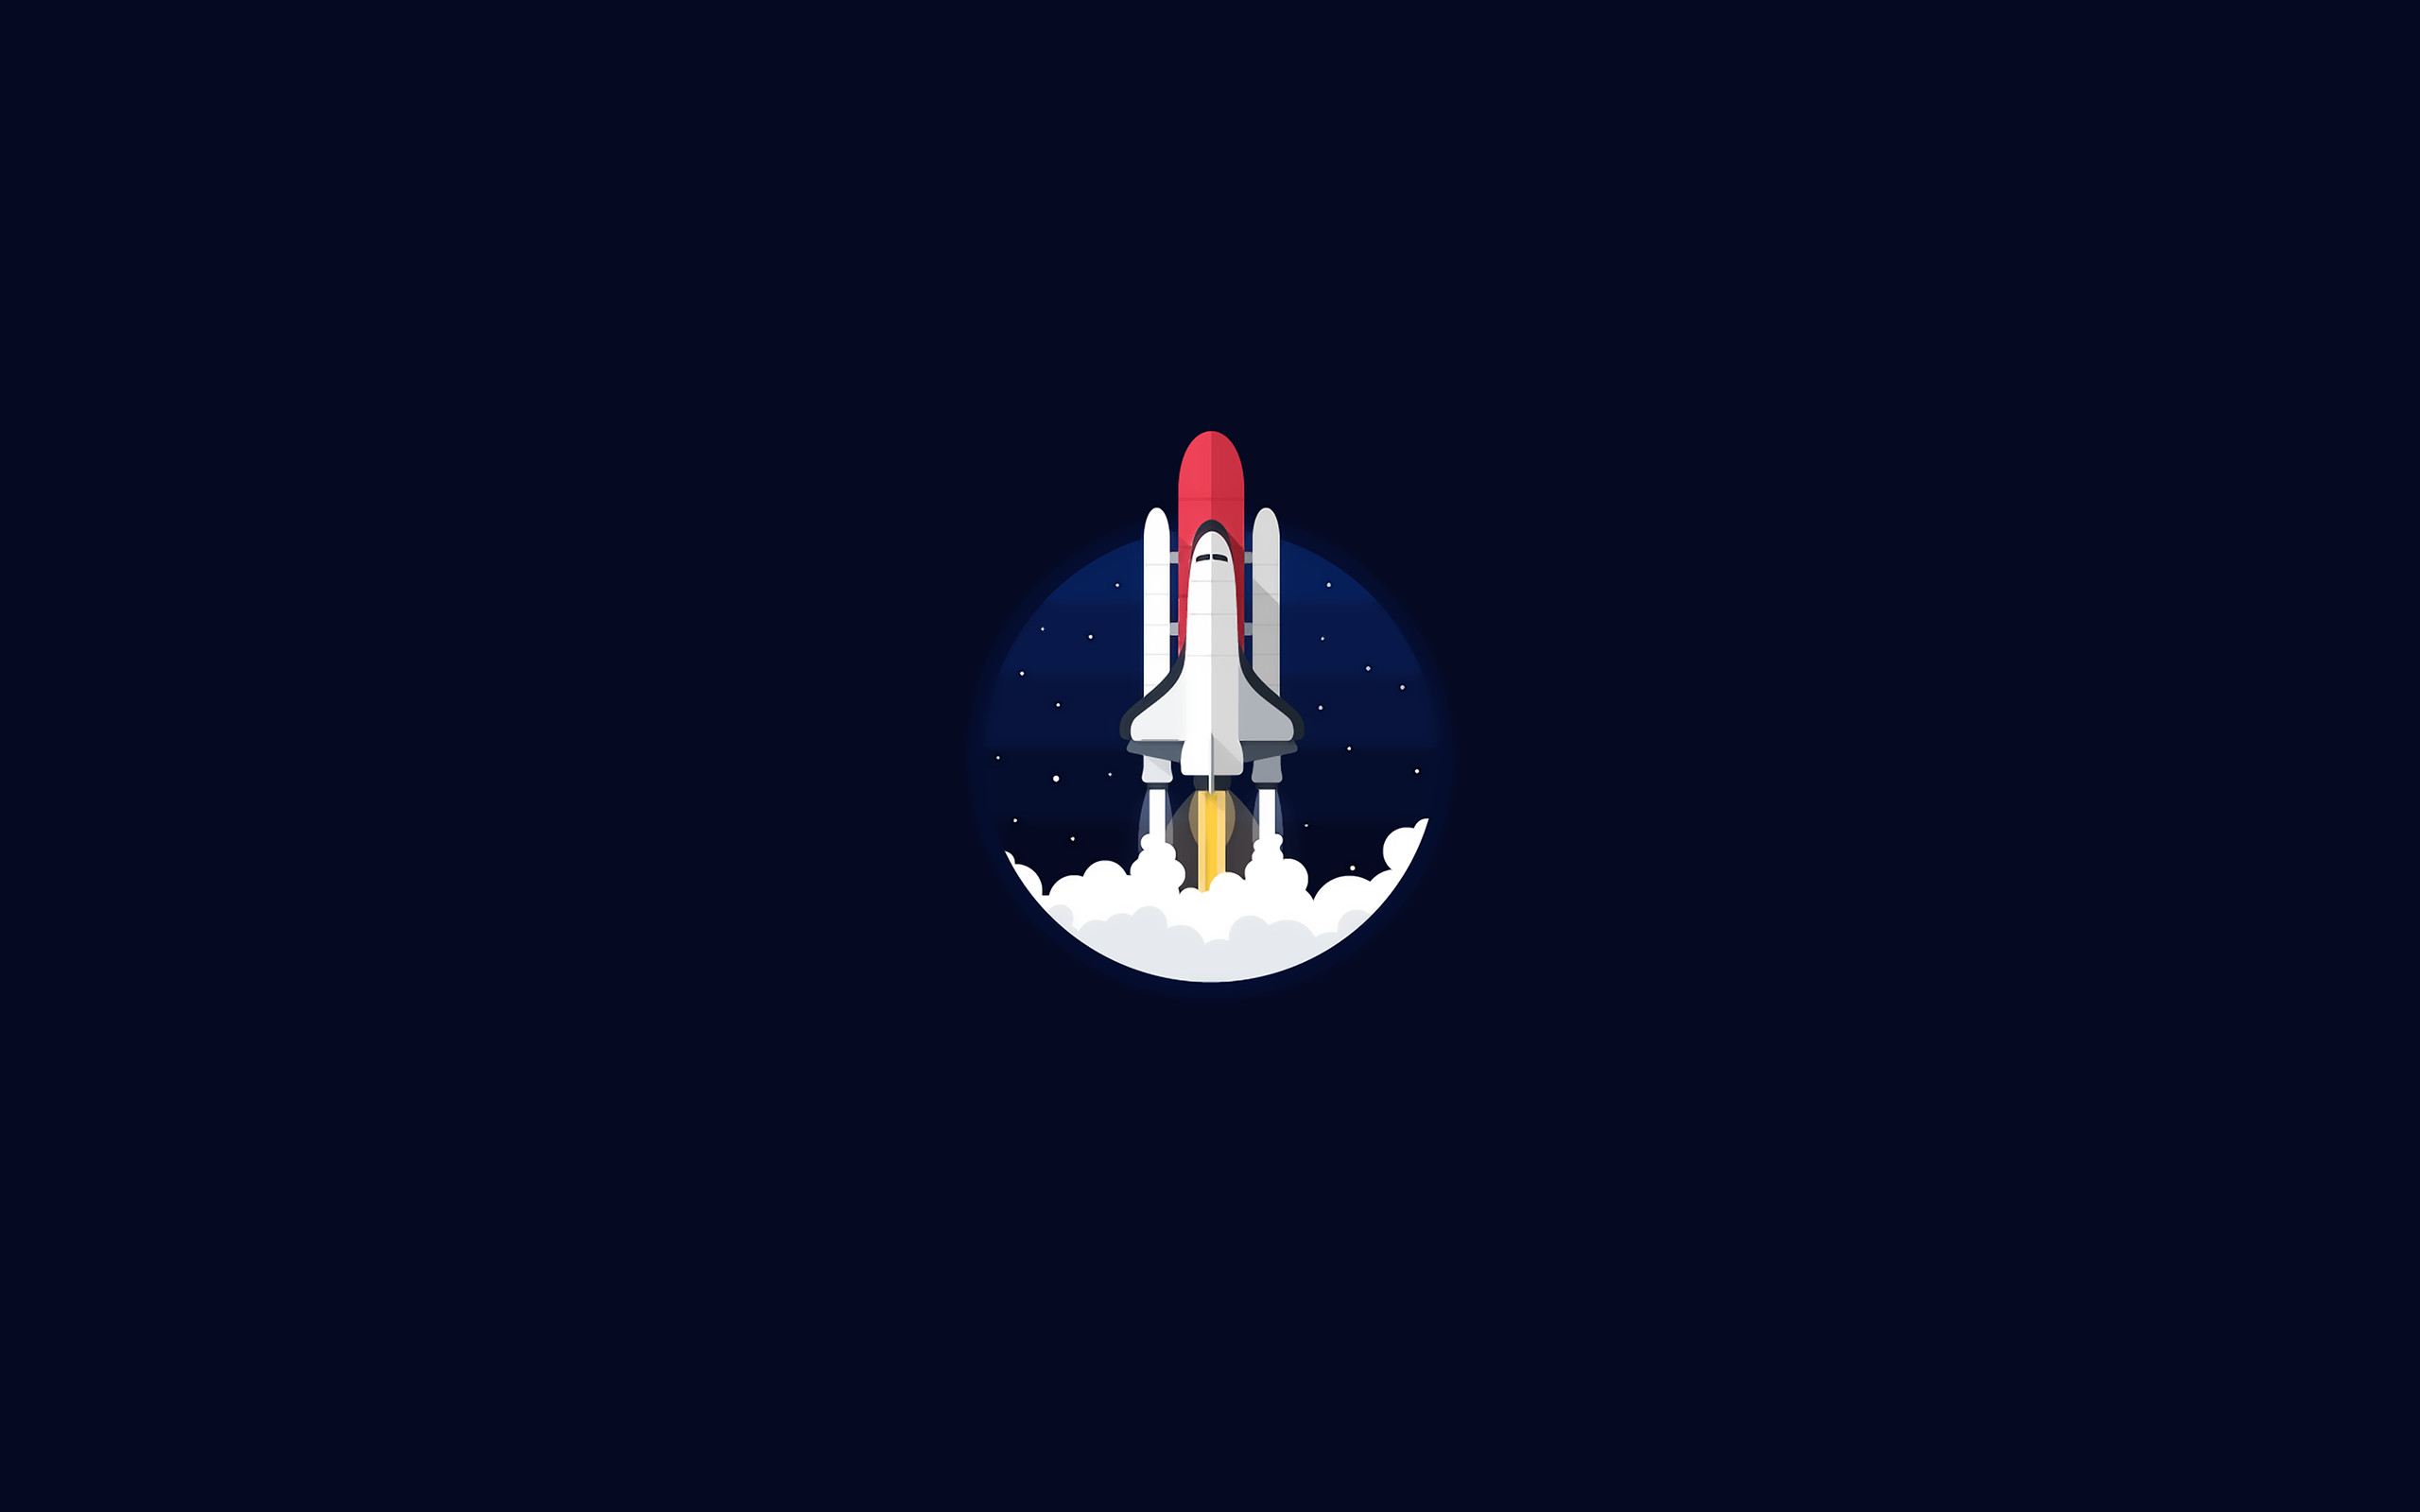 NASA Logo Wallpaper 61 Images